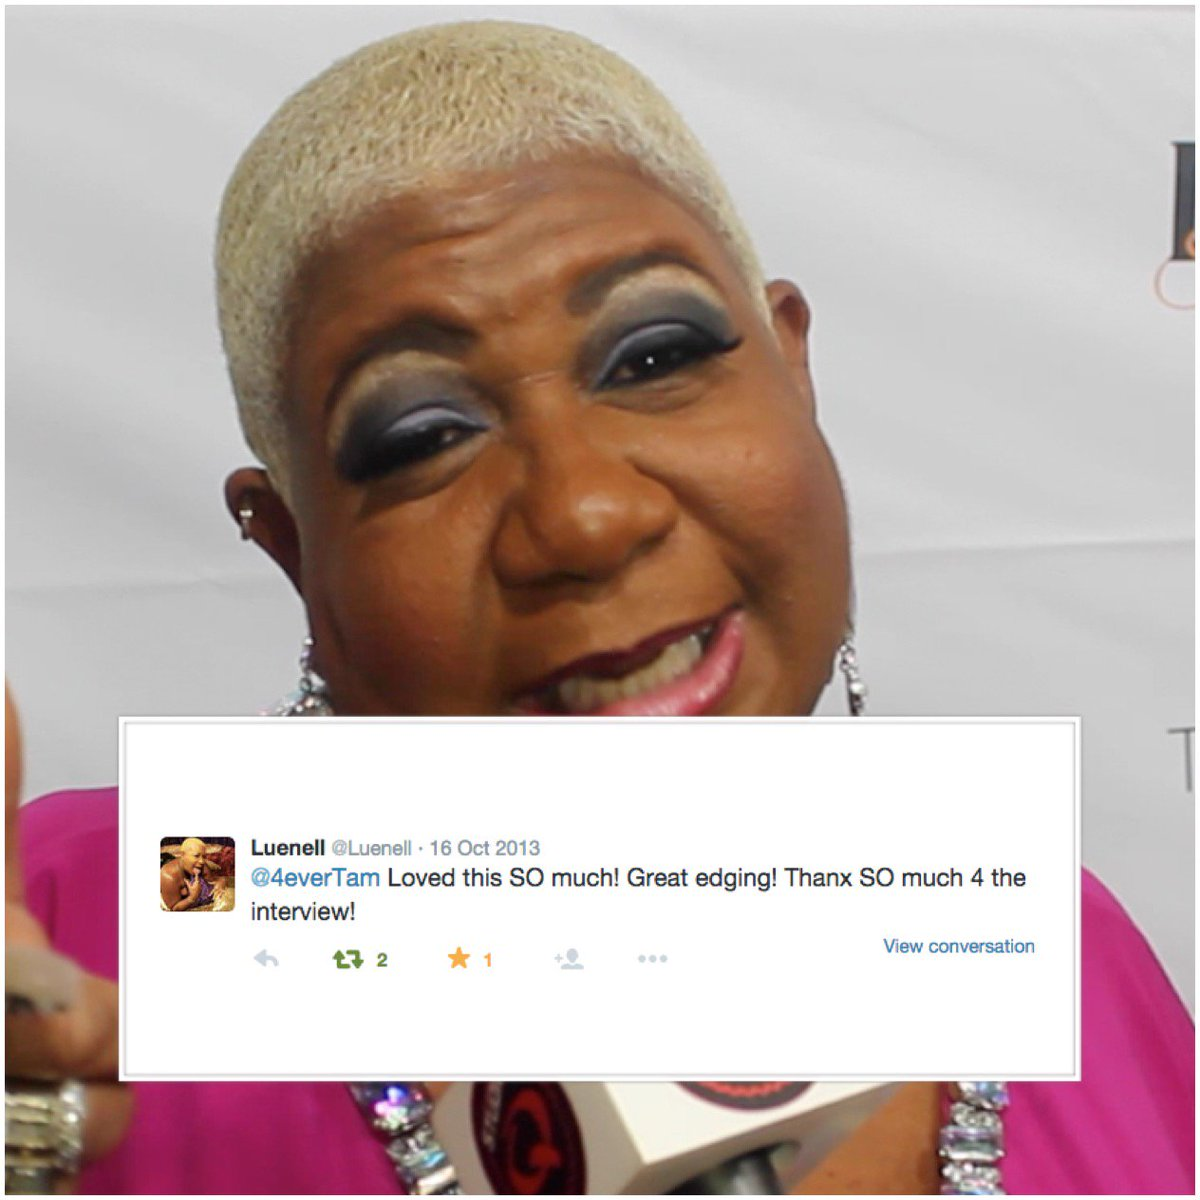 luenell campbell daughter